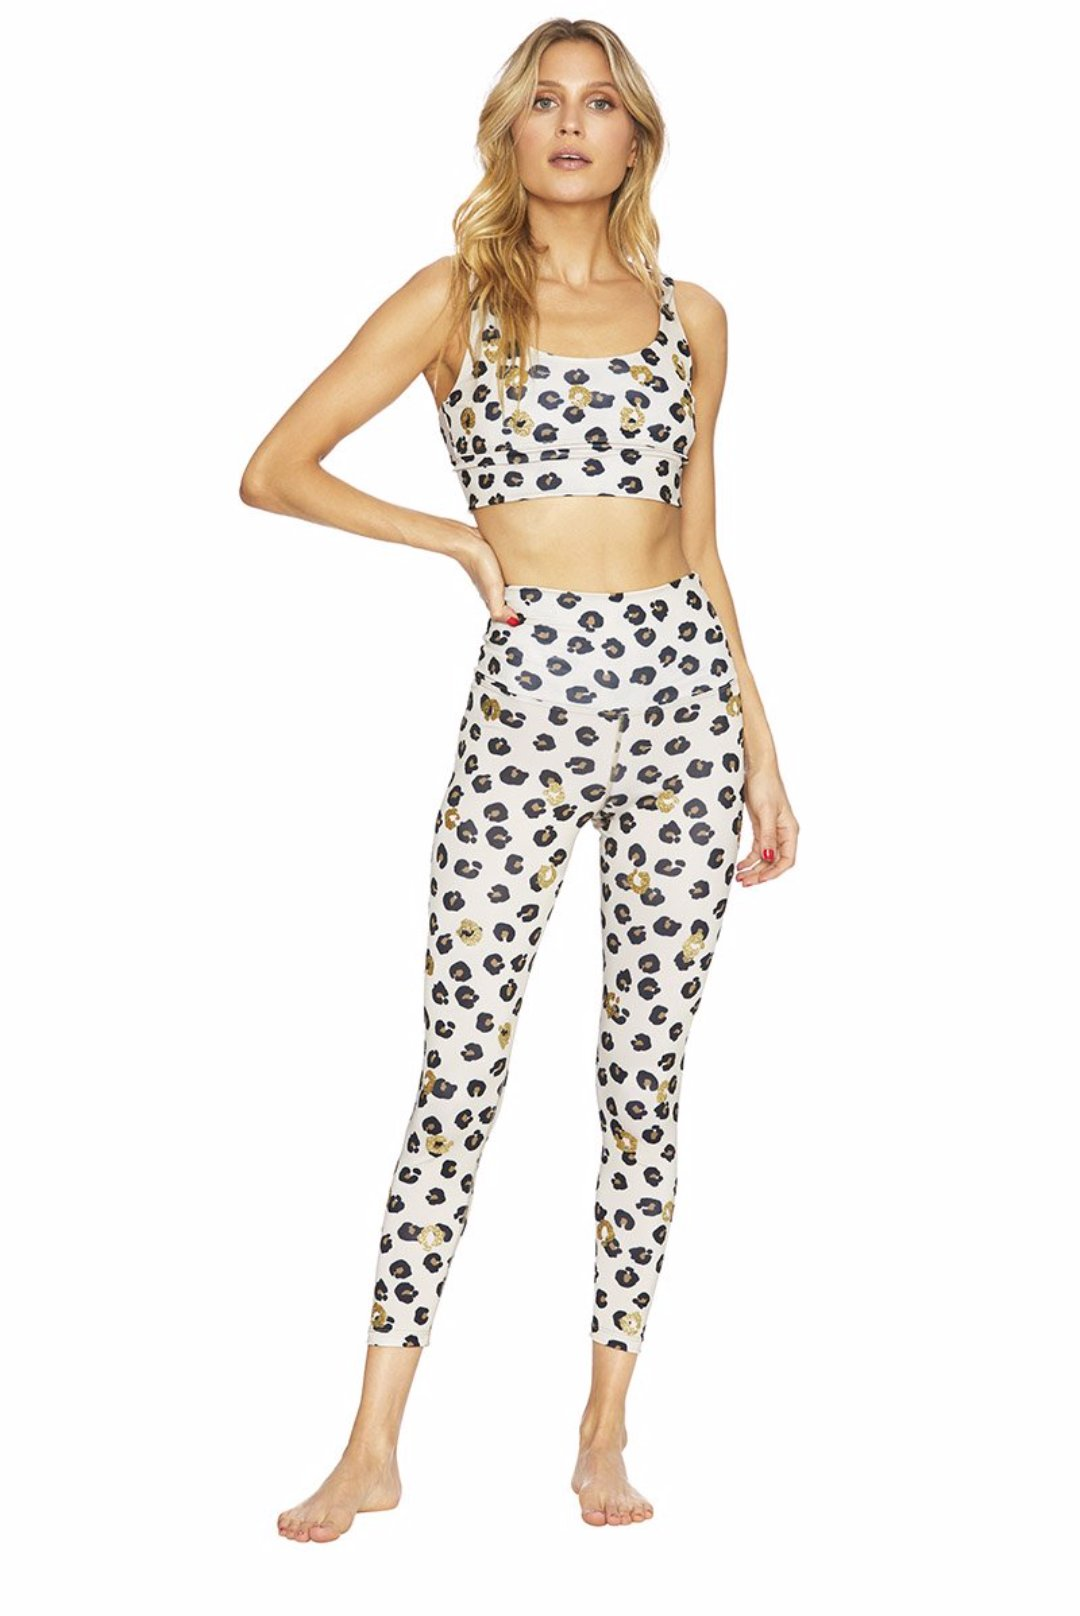 Beach Riot Piper Legging White Gold Leopard